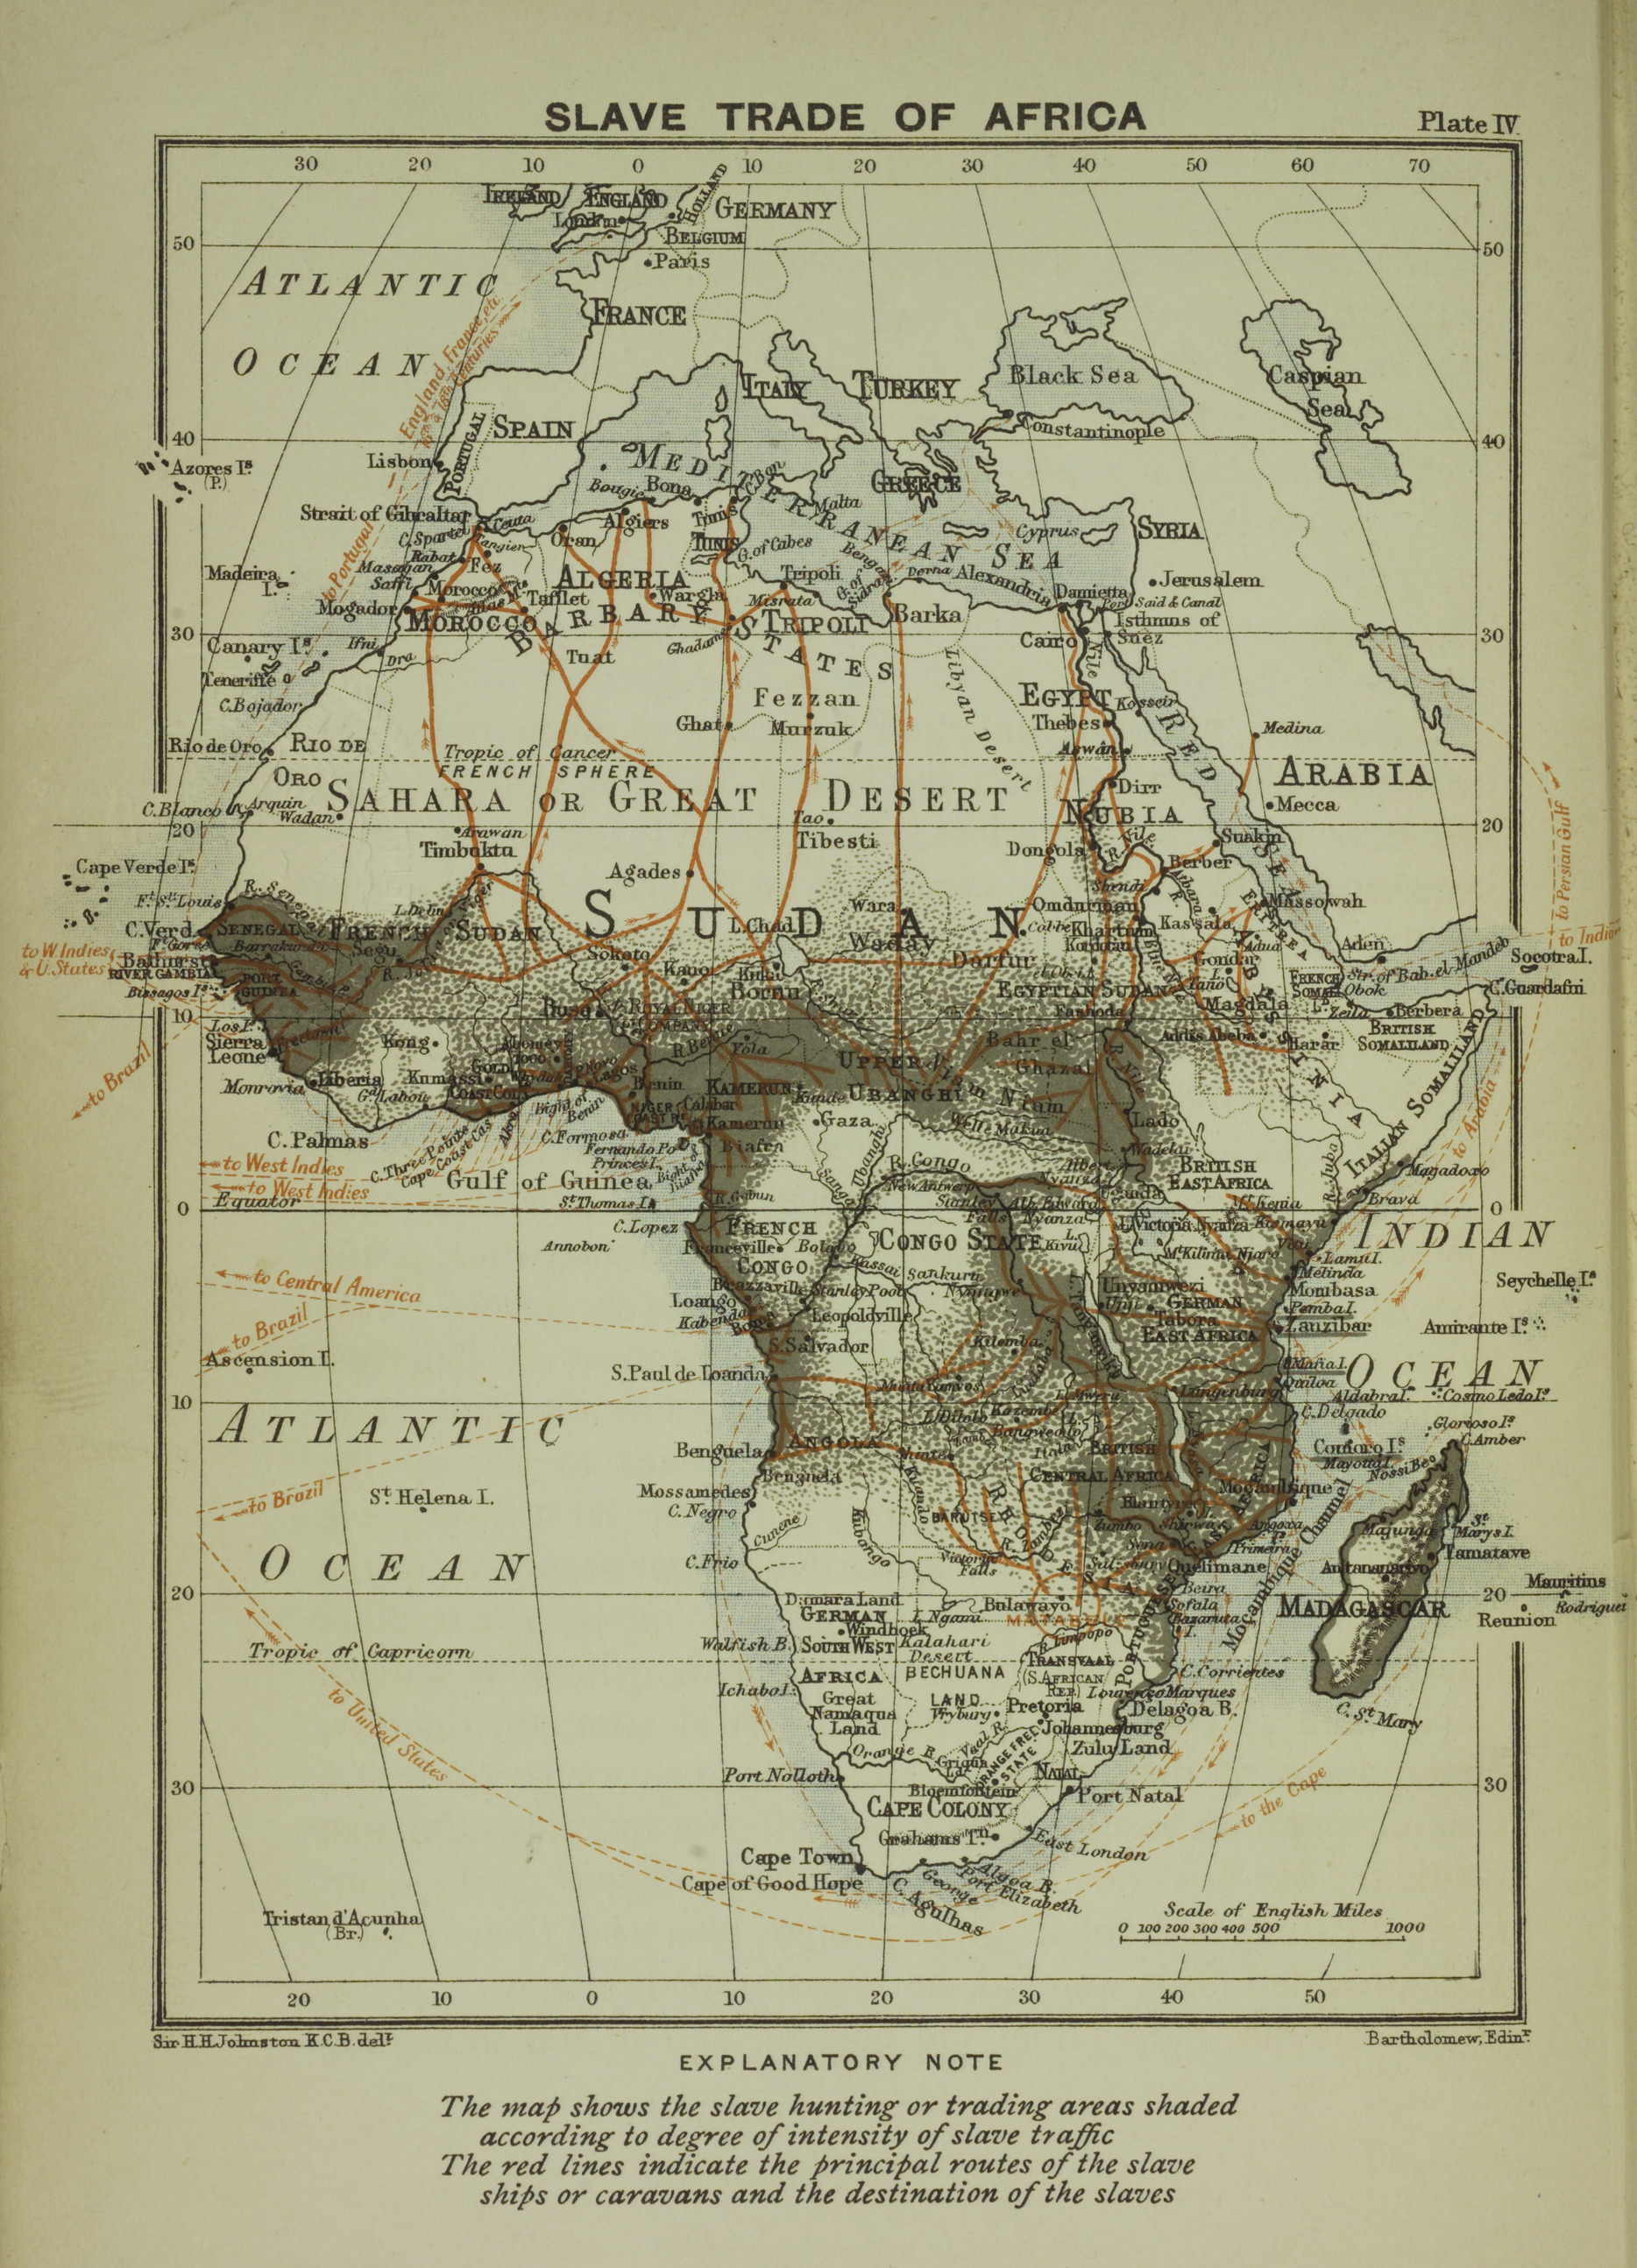 Map Of Africa During Slave Trade.A Map Of The Slave Trade In Africa That Shows The Regions Of Most